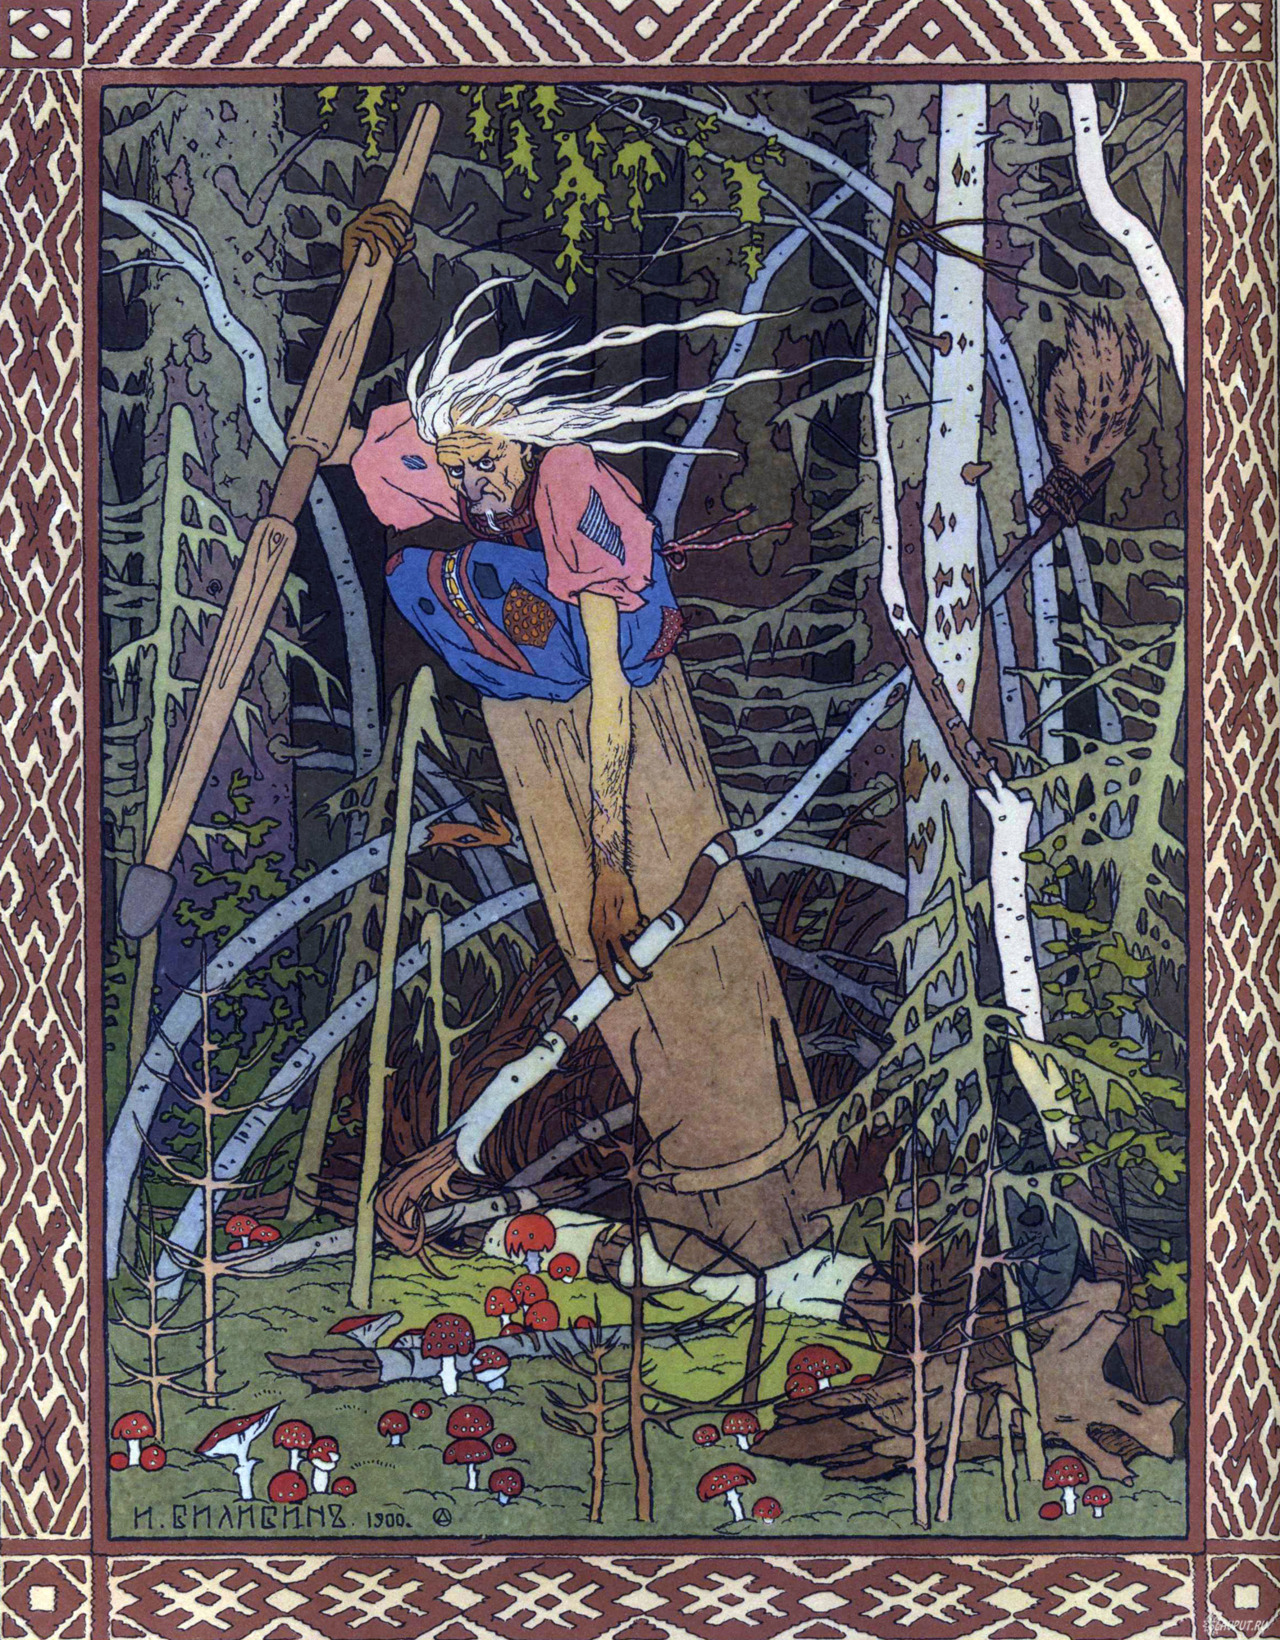 "creature-features:  ""Baba Yaga or Baba Roga (also known by various other names) is a haggish or witchlike character in Slavic folklore. She flies around on a giant mortar, kidnaps  (and presumably eats) small children, and lives in a hut that stands on  chicken legs. In most Slavic folk tales, she is portrayed as an antagonist; however, some characters in other mythological folk stories have been known to seek her out for her wisdom, and she has been known on rare occasions to offer guidance to lost souls.""  I love the way Mignola handles her, and Fegredo draws her."